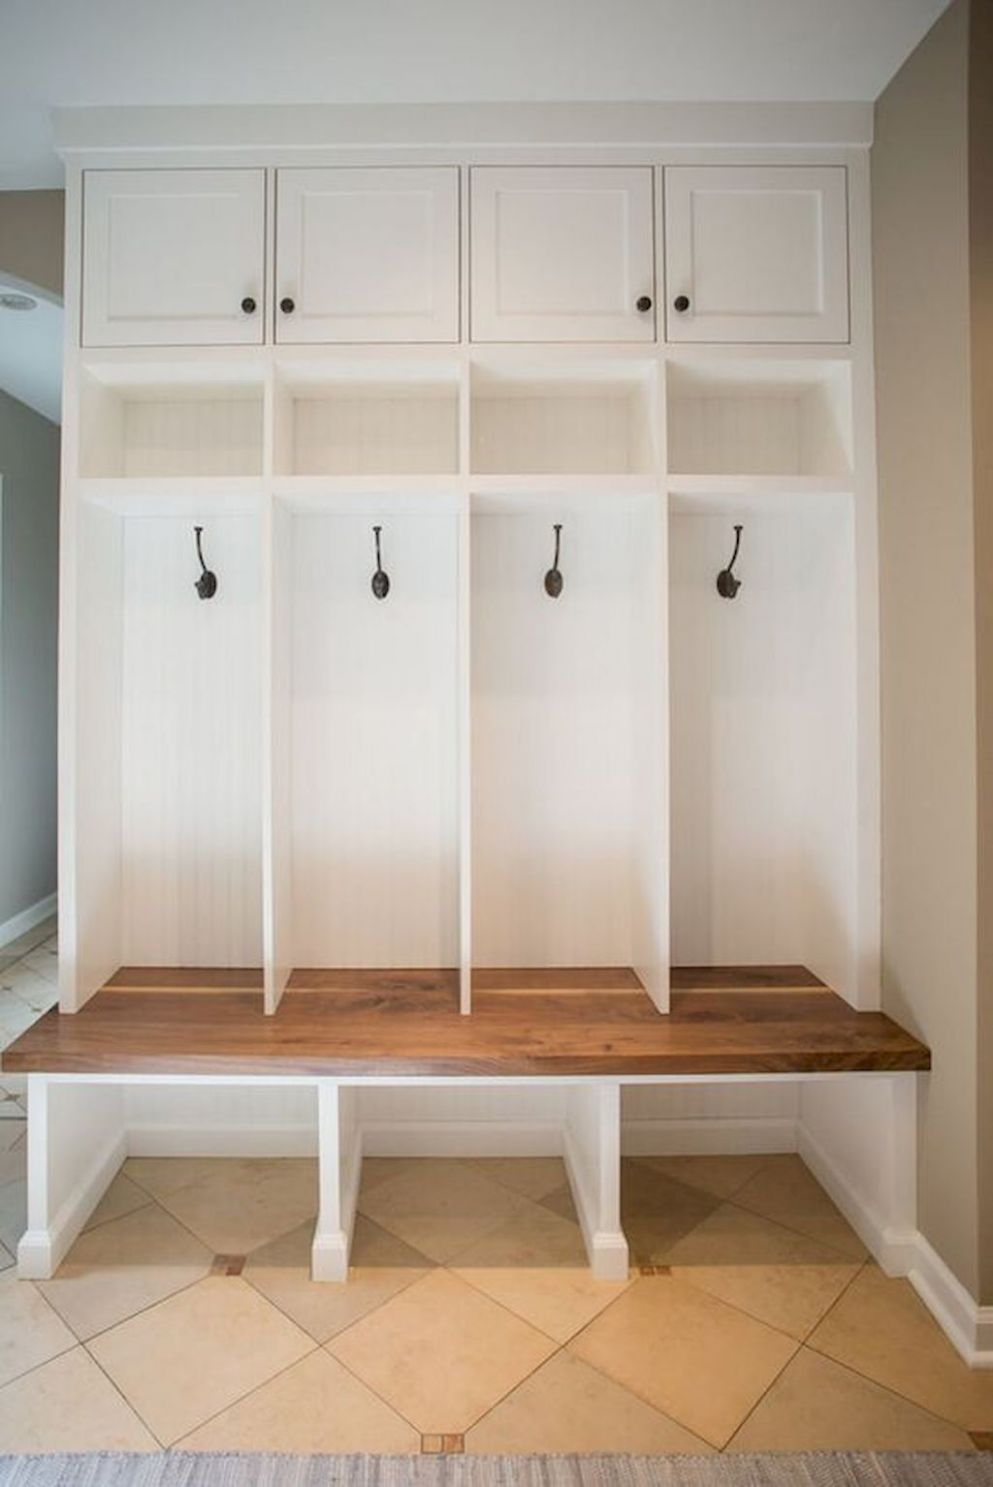 Armhouse mudroom bench ideas (9 (With images) | Mud room storage ..